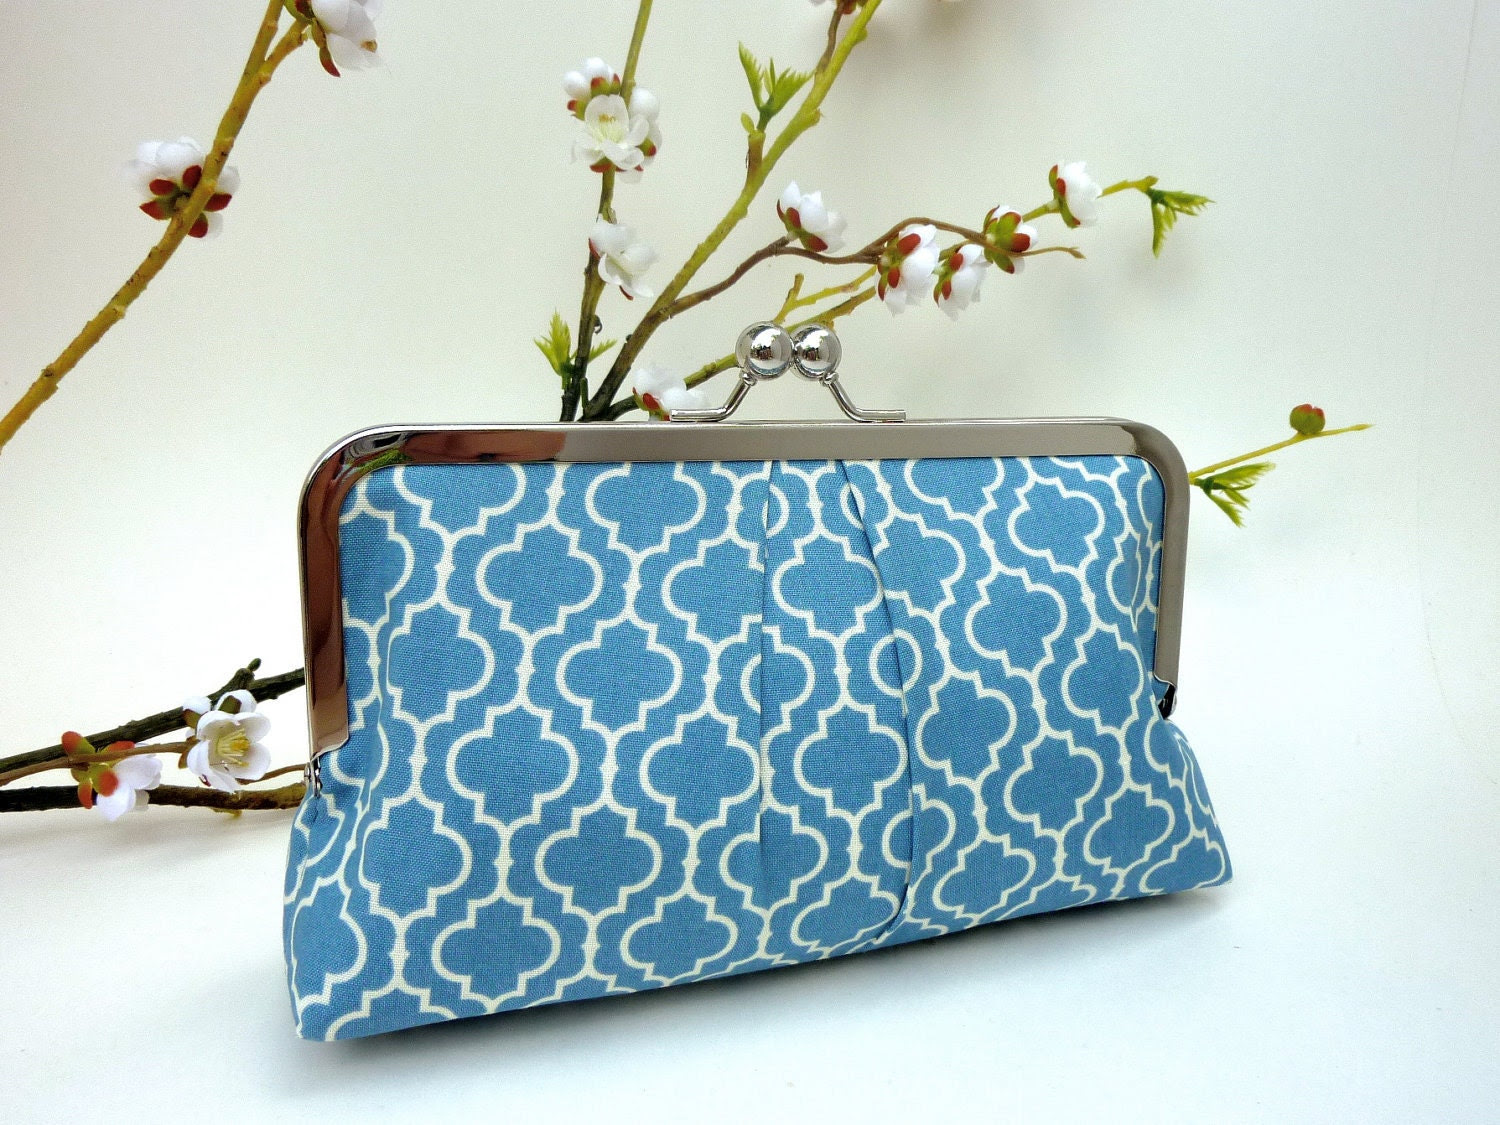 NEW - Tiles in Dusty Blue KissLock Clutch